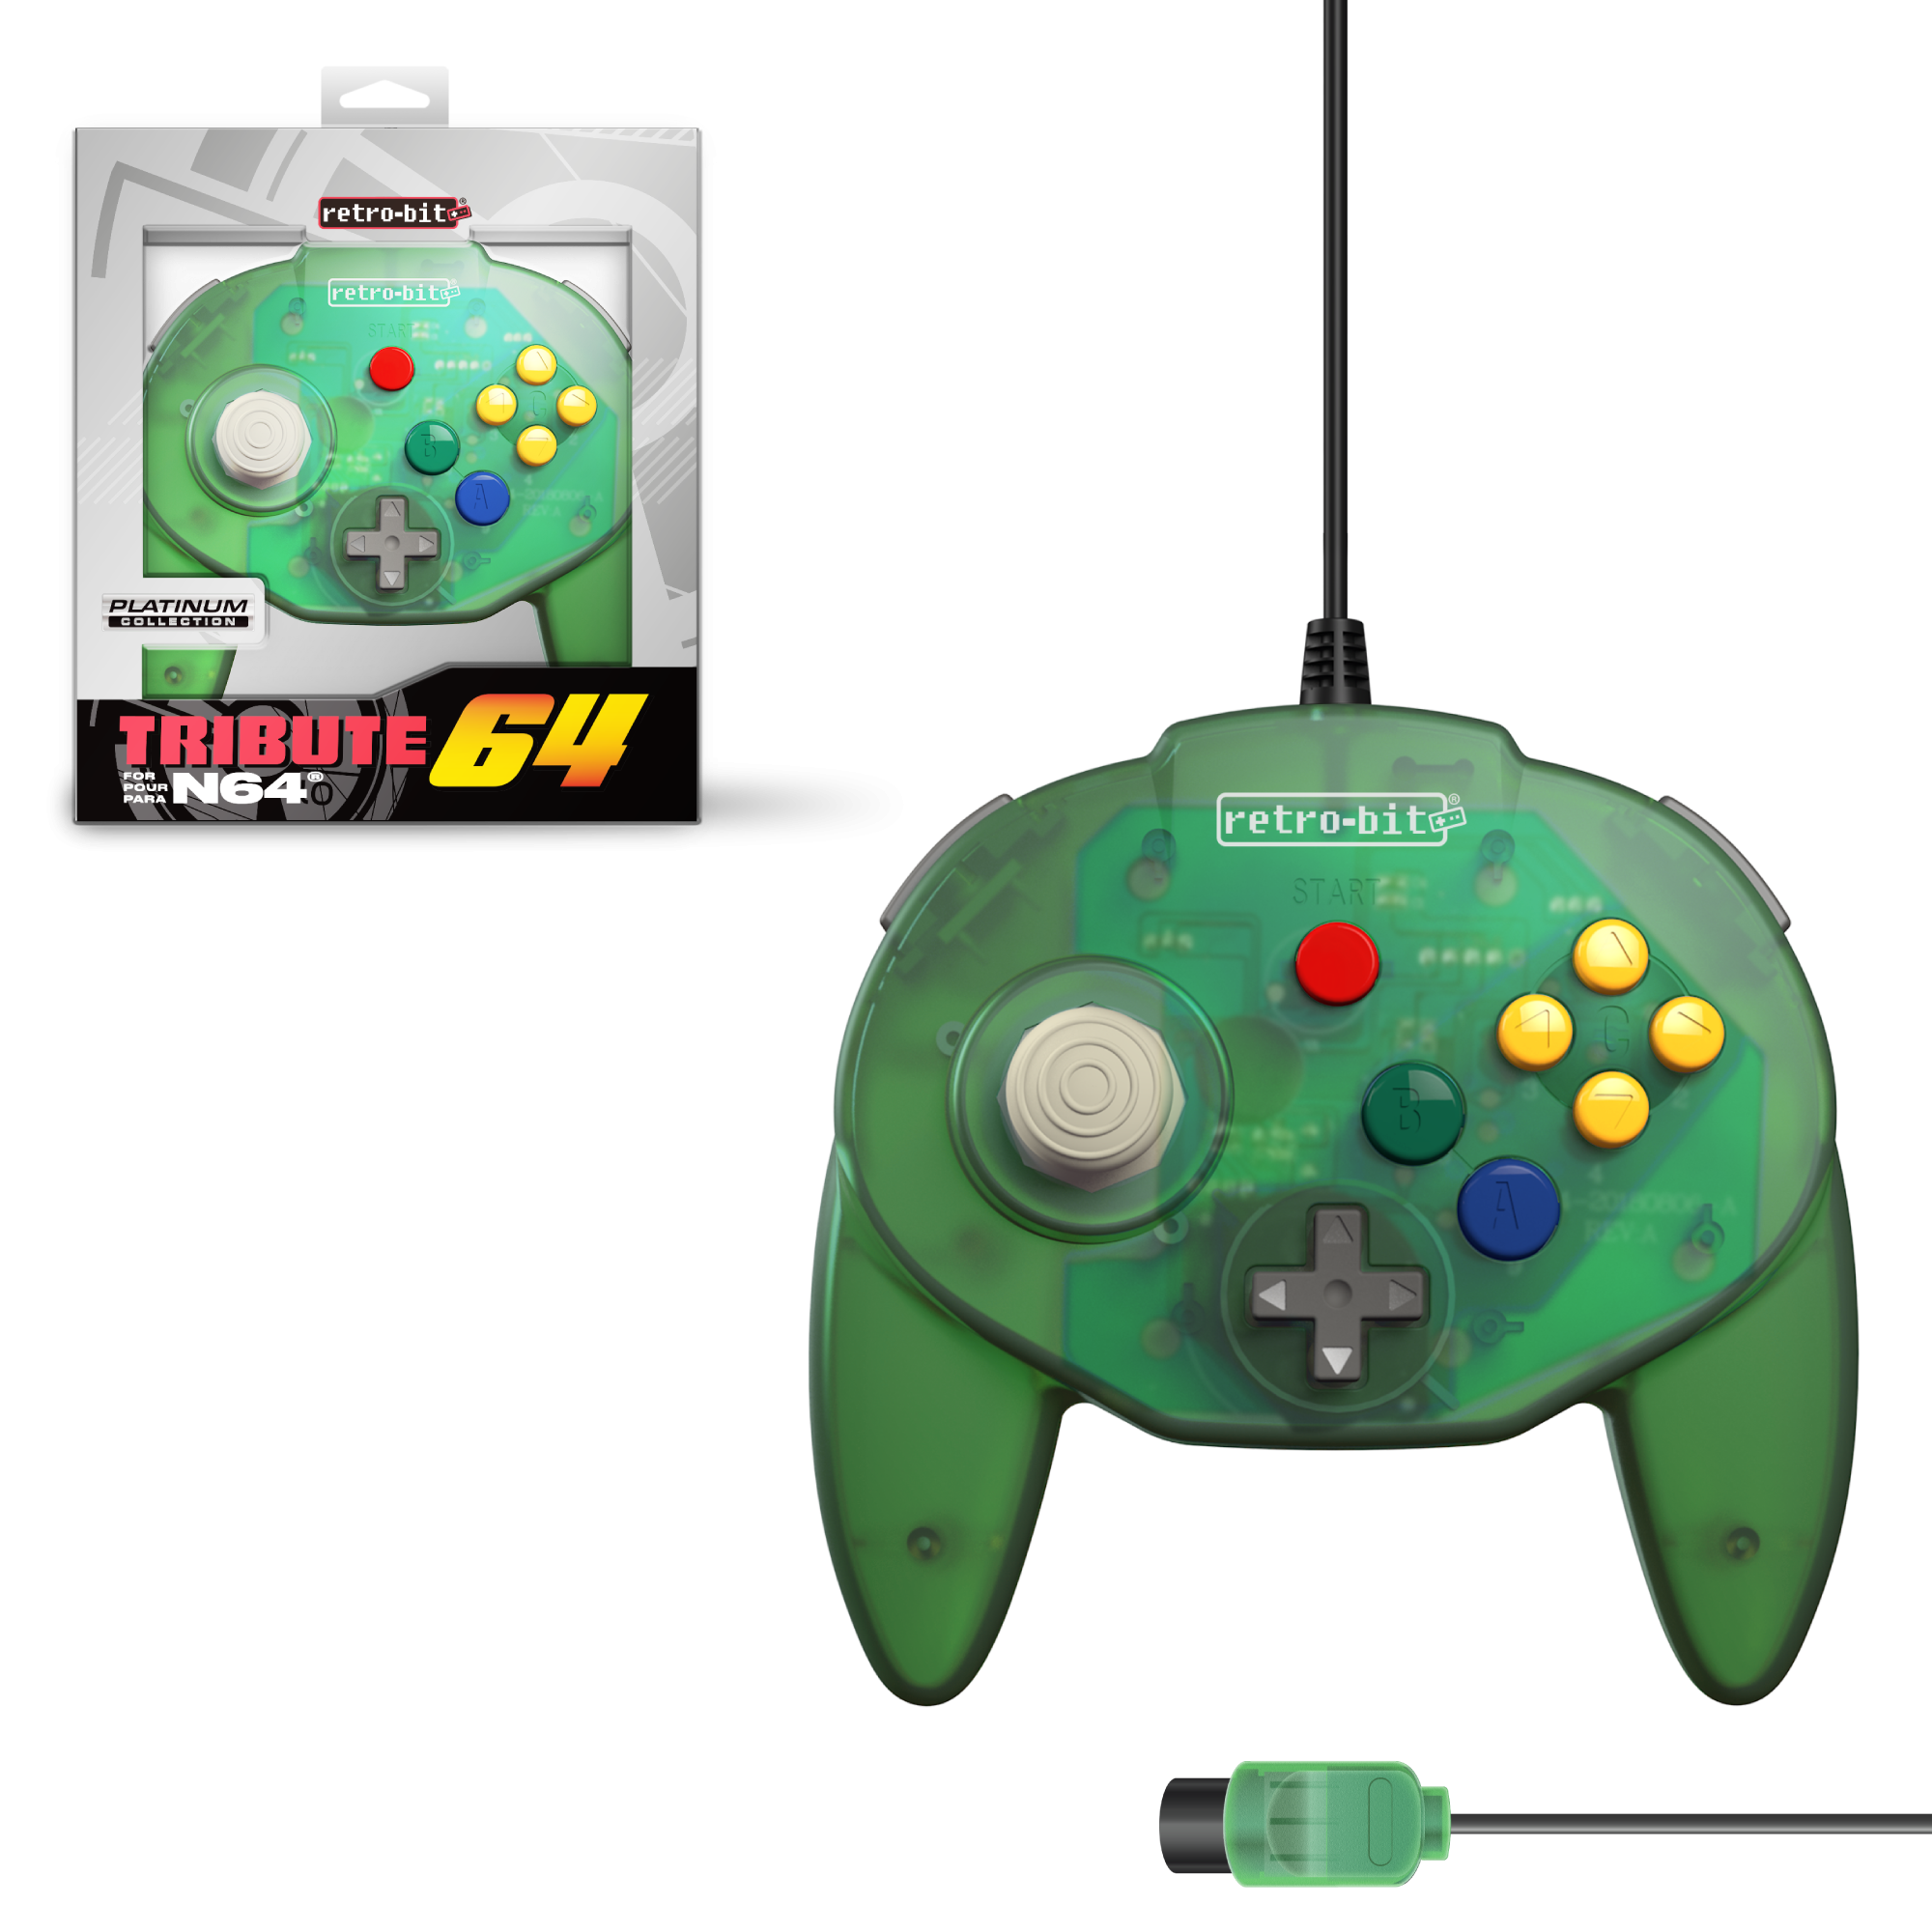 Tribute 64 - Forest Green